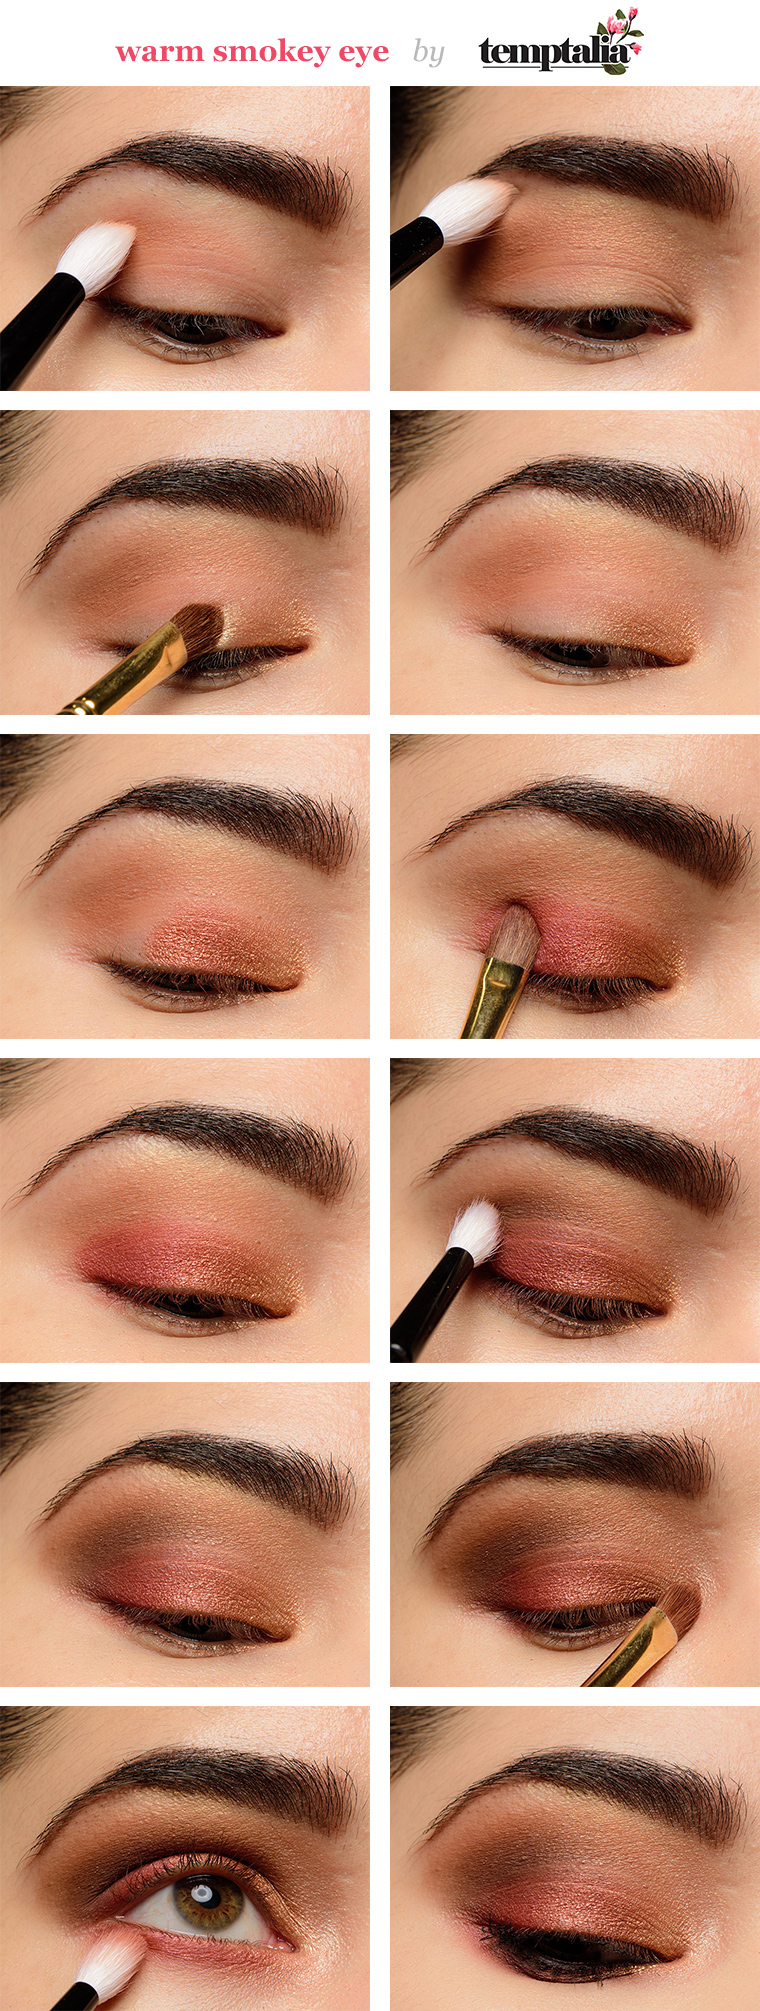 eye makeup for beginners: step-by-step tutorial (2020